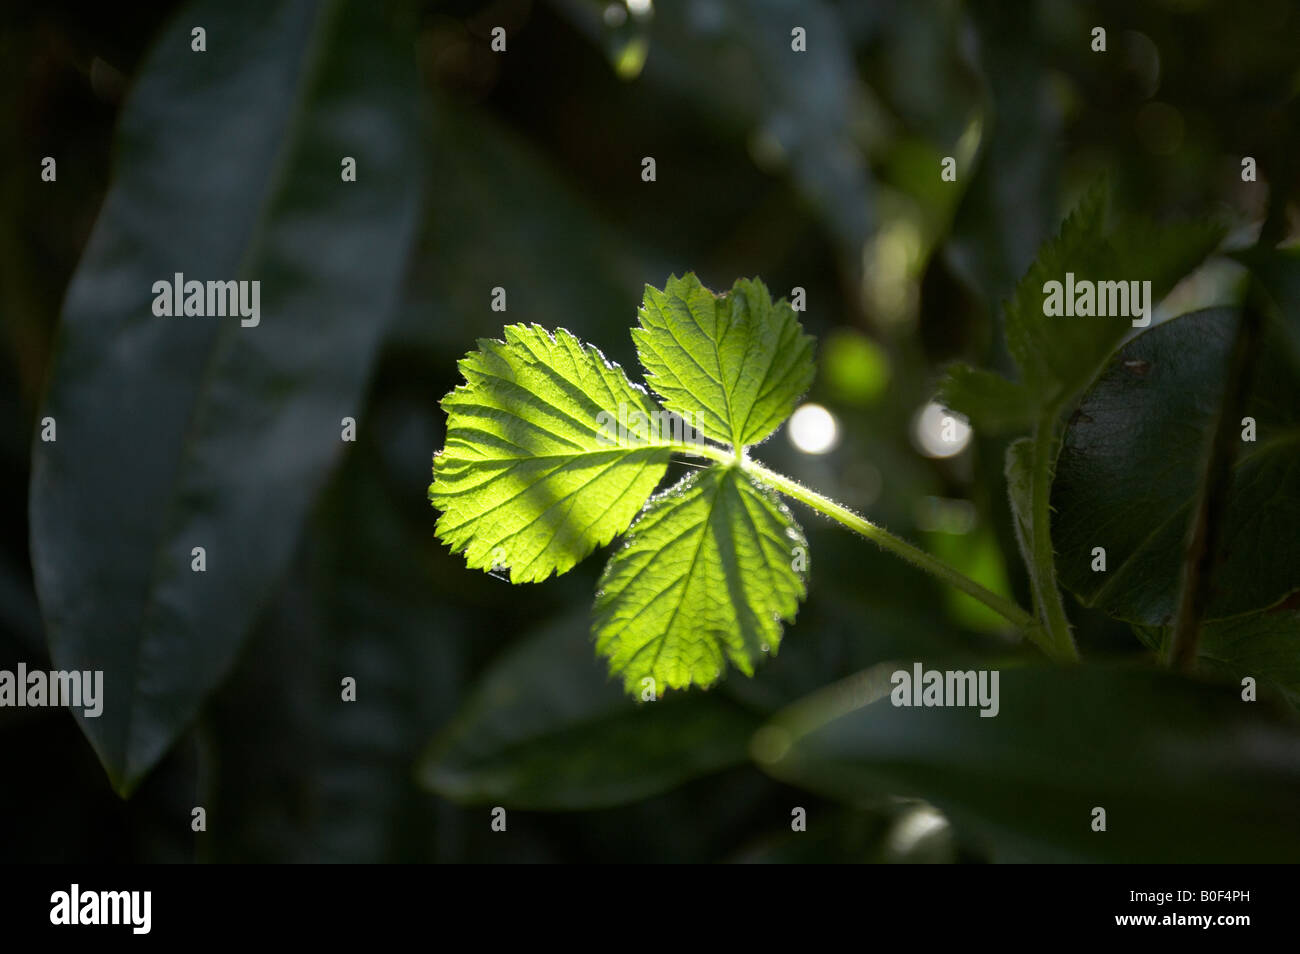 Plant leaf caught in a ray of direct sunlight sunshine in the New forest Hampshire England UK - Stock Image